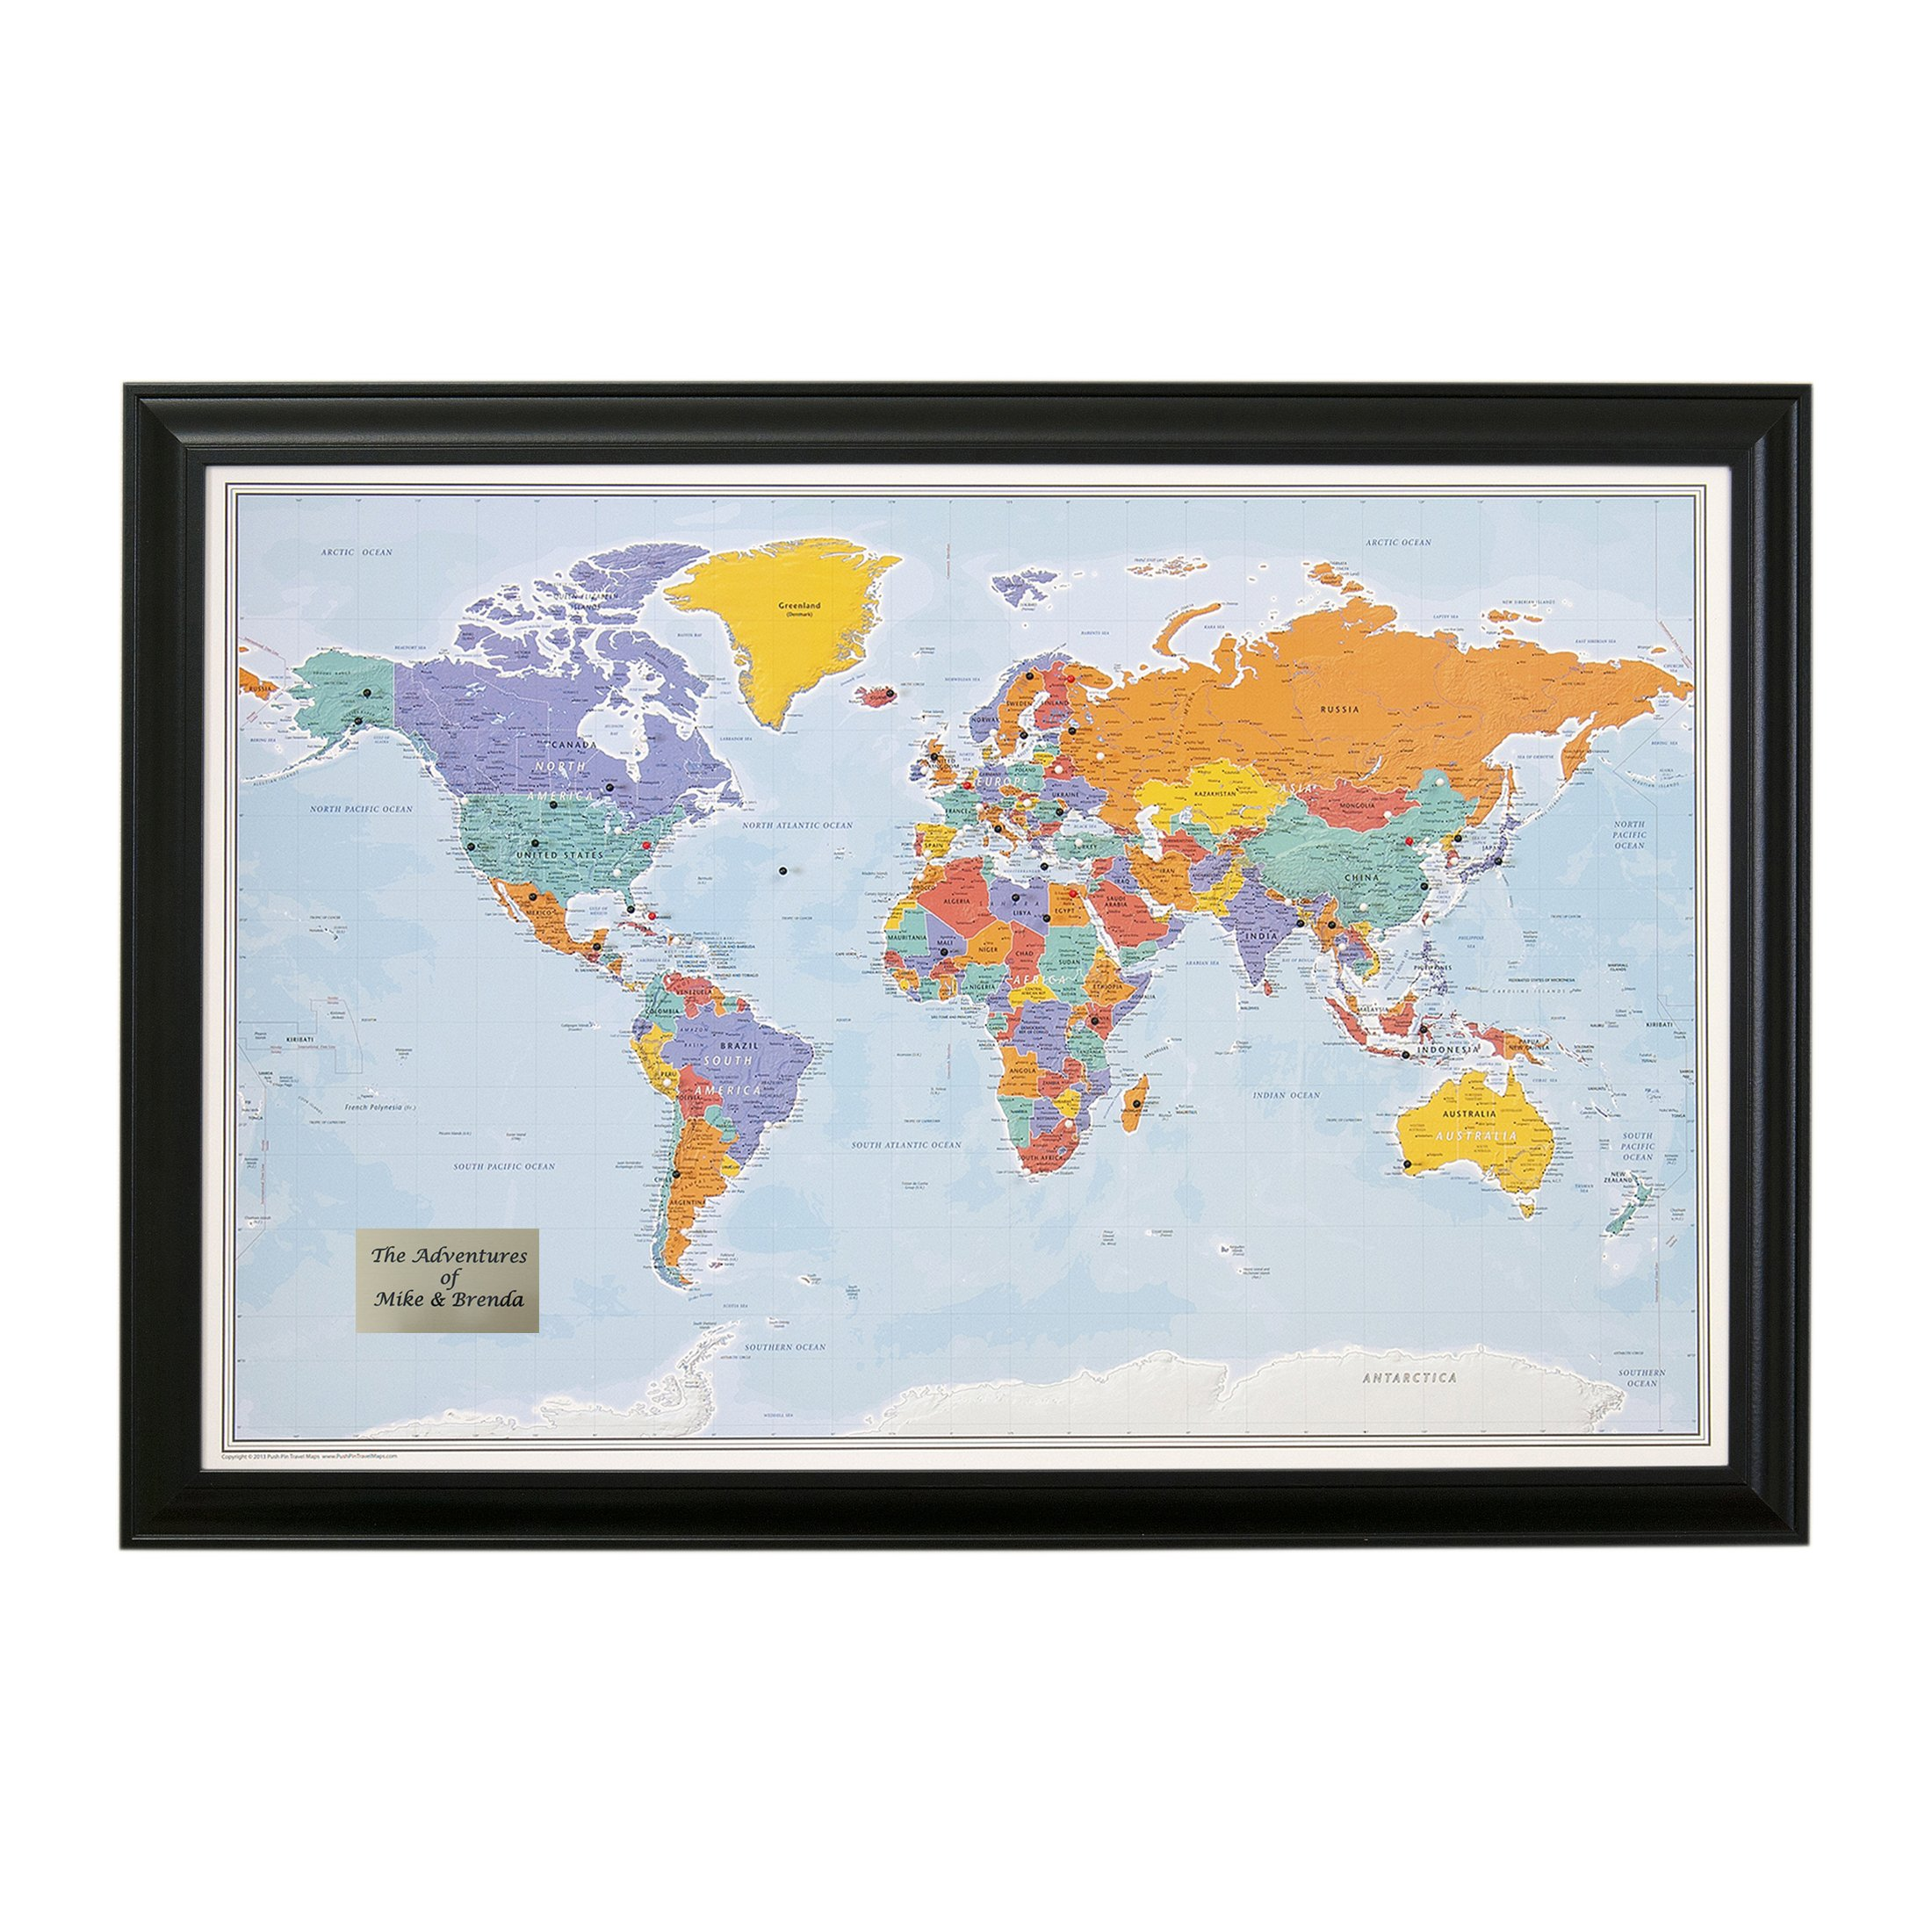 Personalized Push Pin World Travel Map with Black Frame and Pins - Blue Oceans 24 x 36